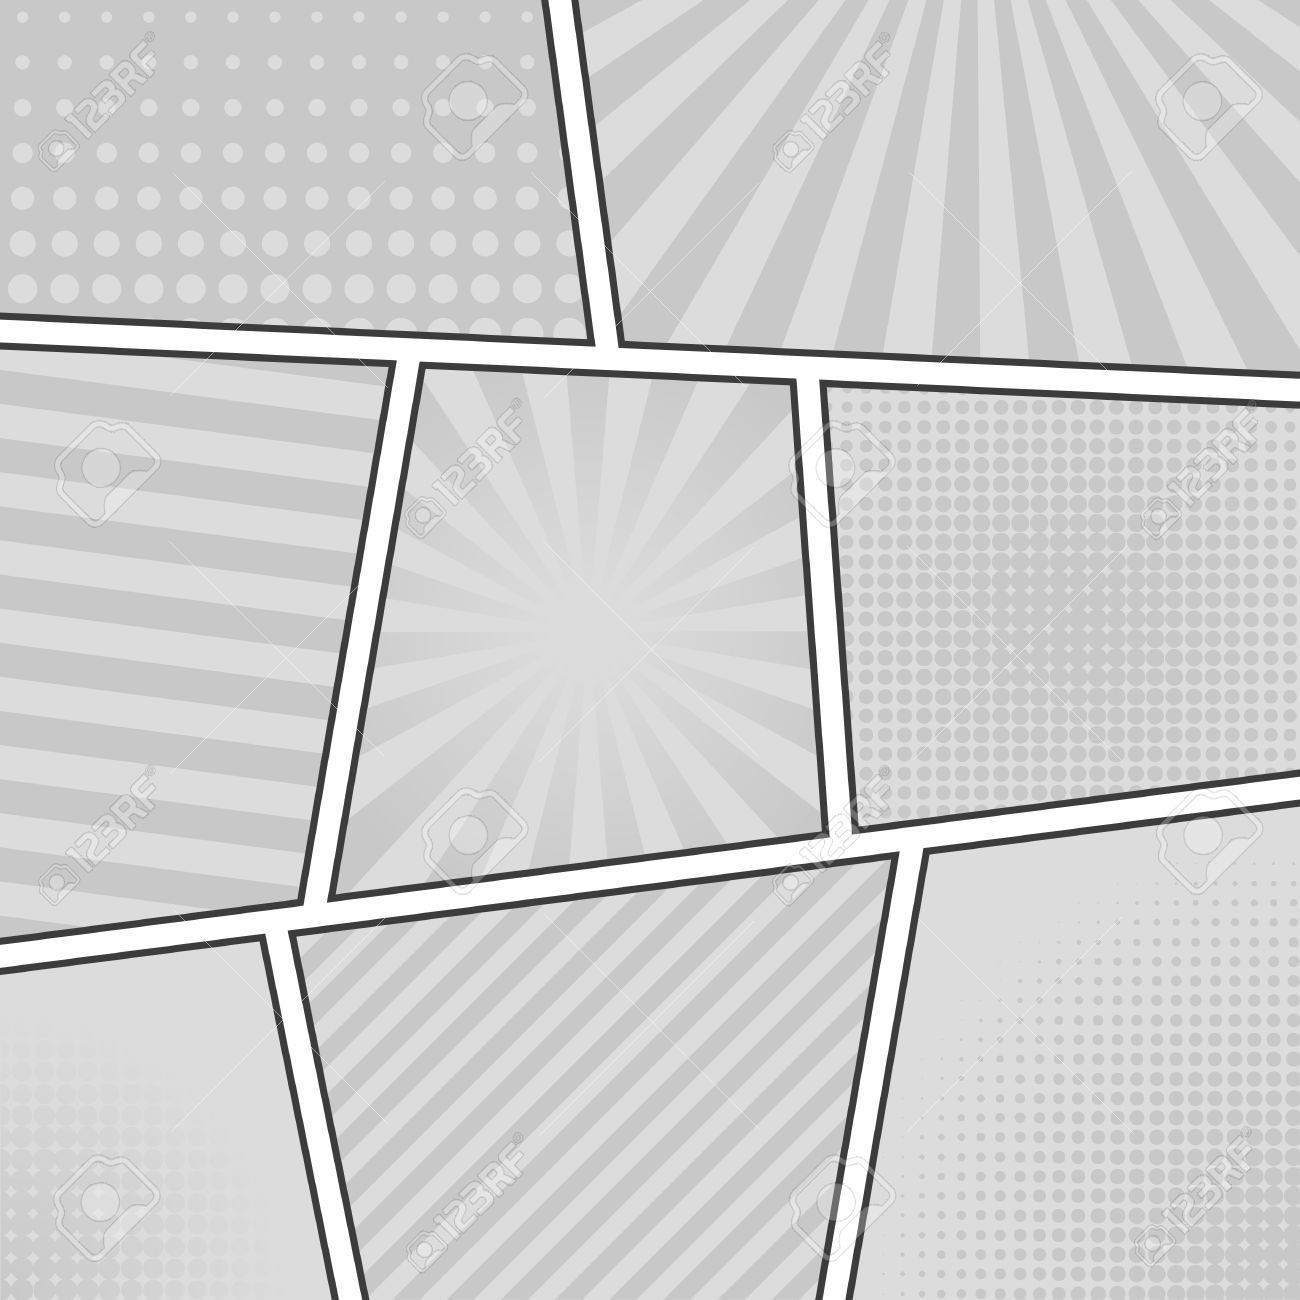 Comic Strip Monochrome Background. Different Panels. Rays, Lines, Dots.  Template Vector